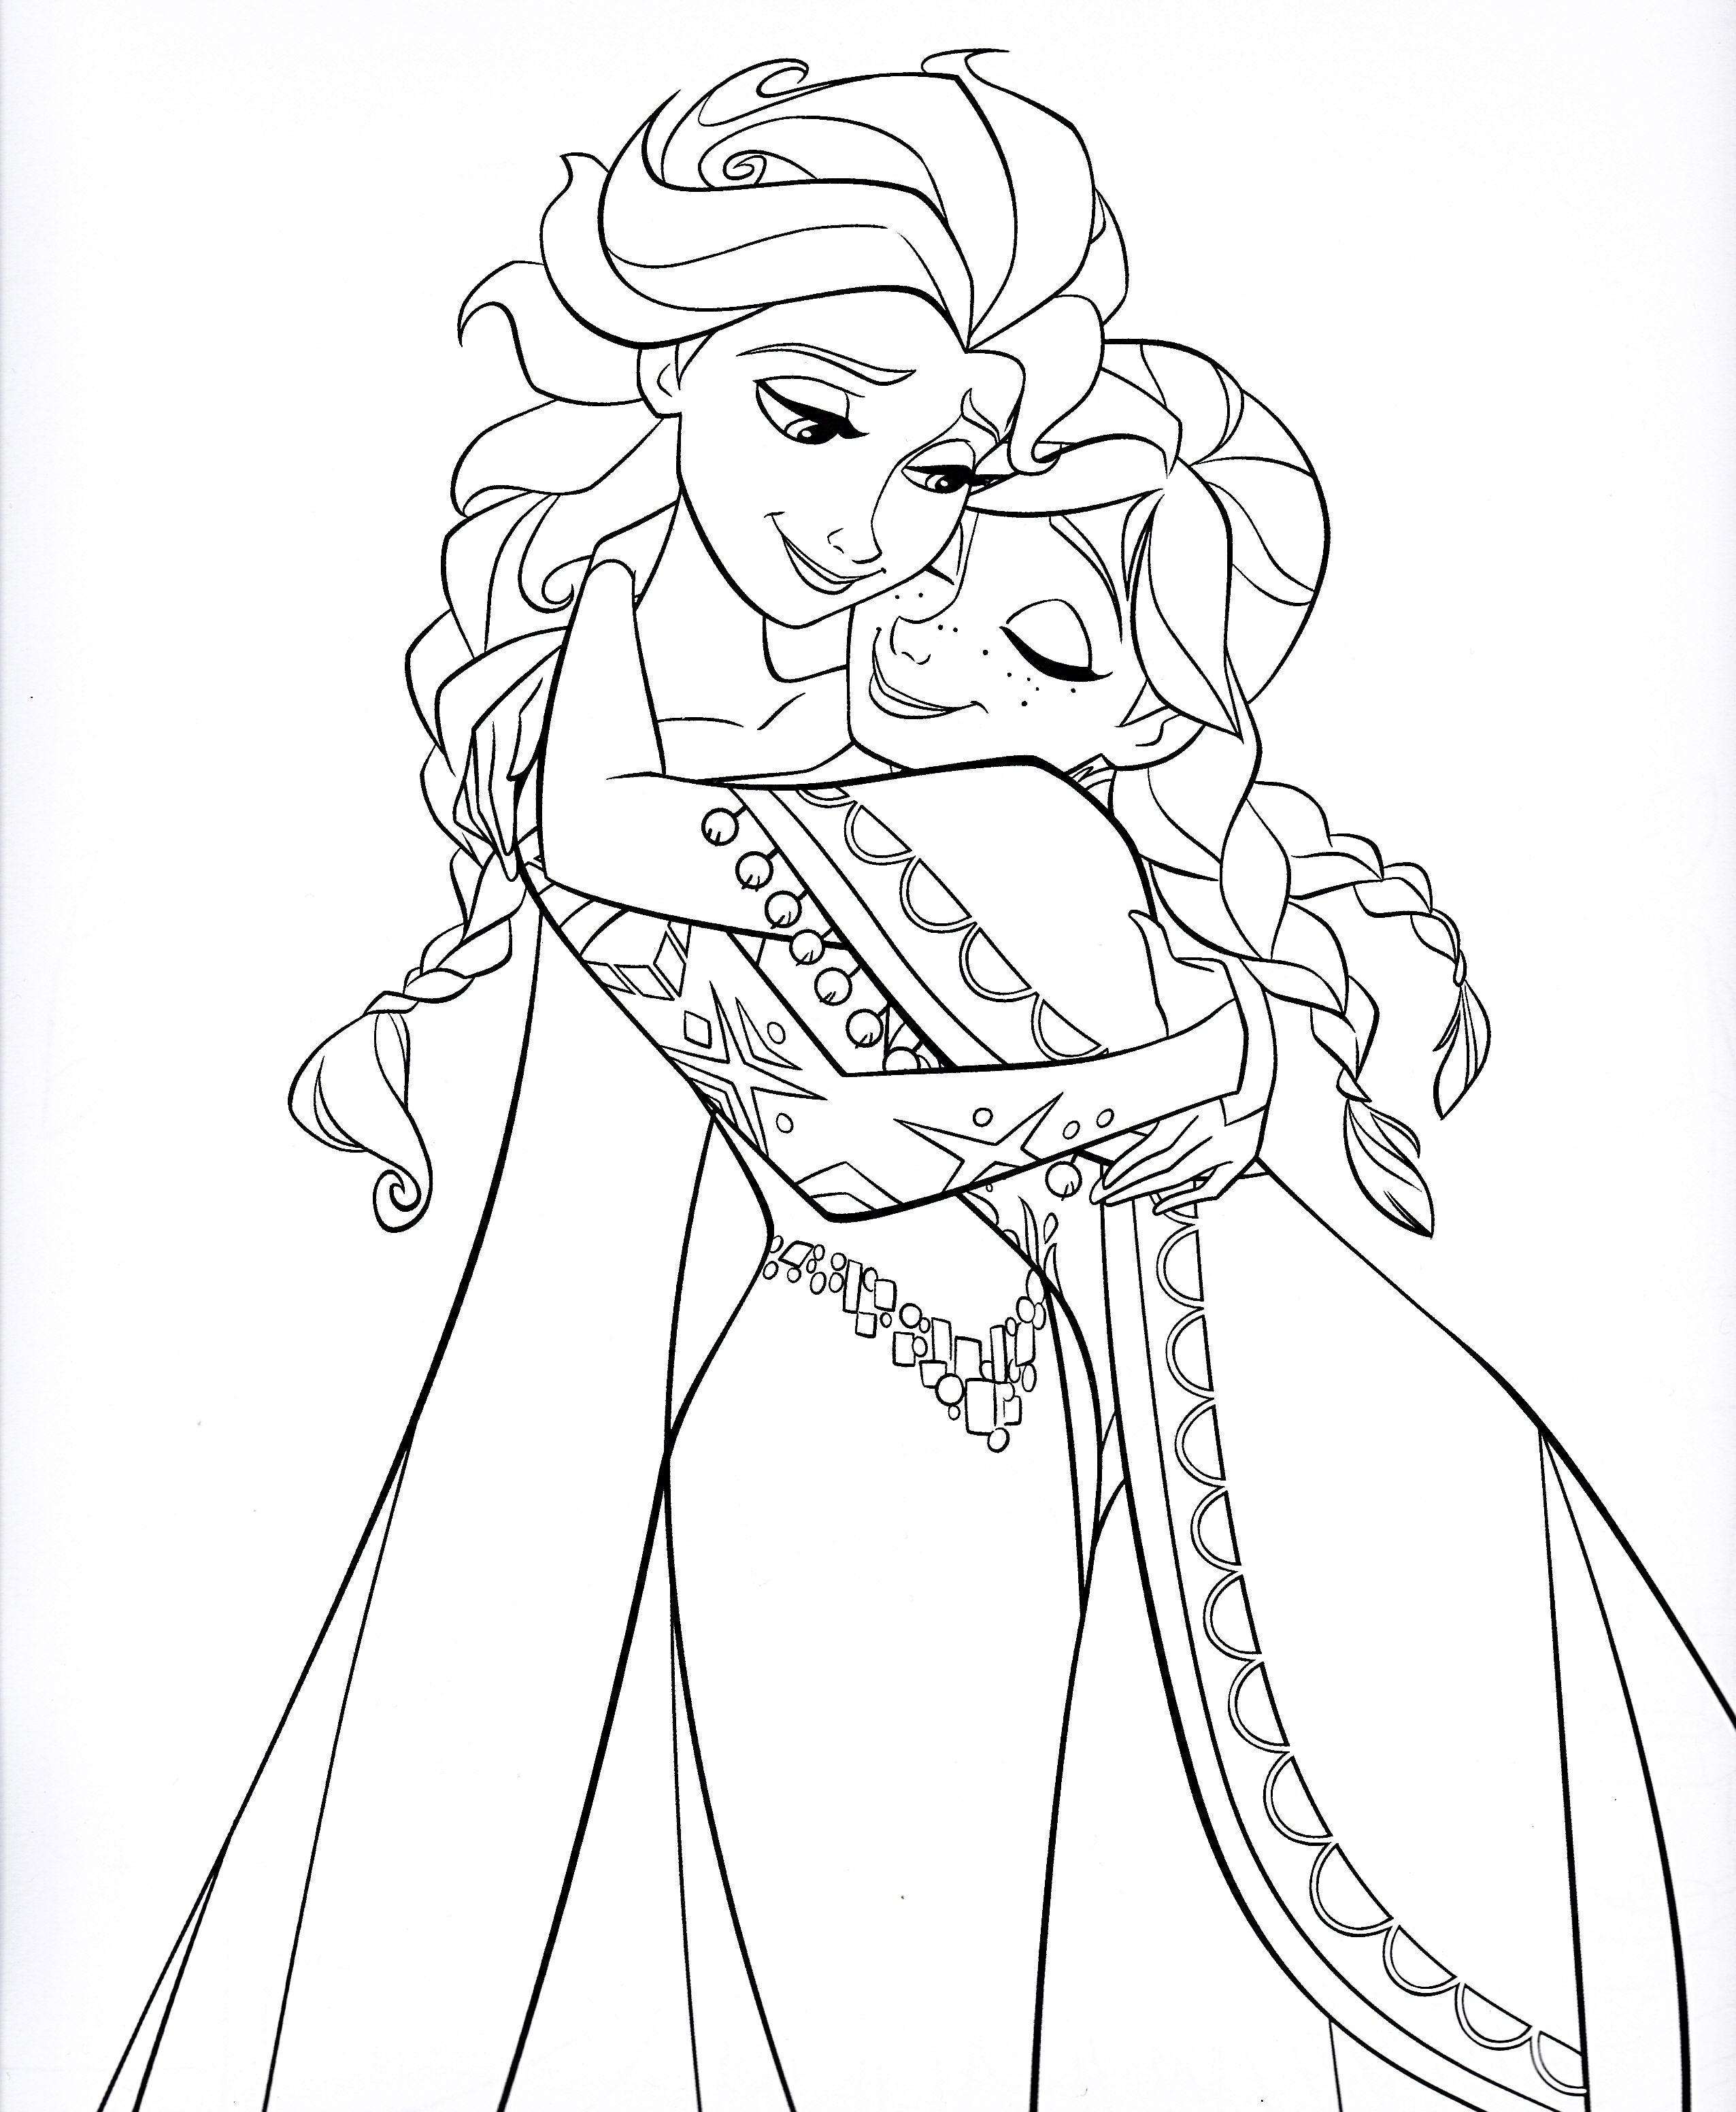 Disney Coloring Elsa Coloring Pages Allow Kids To Accompany Their Favorite Characte Elsa Coloring Pages Disney Princess Coloring Pages Frozen Coloring Pages